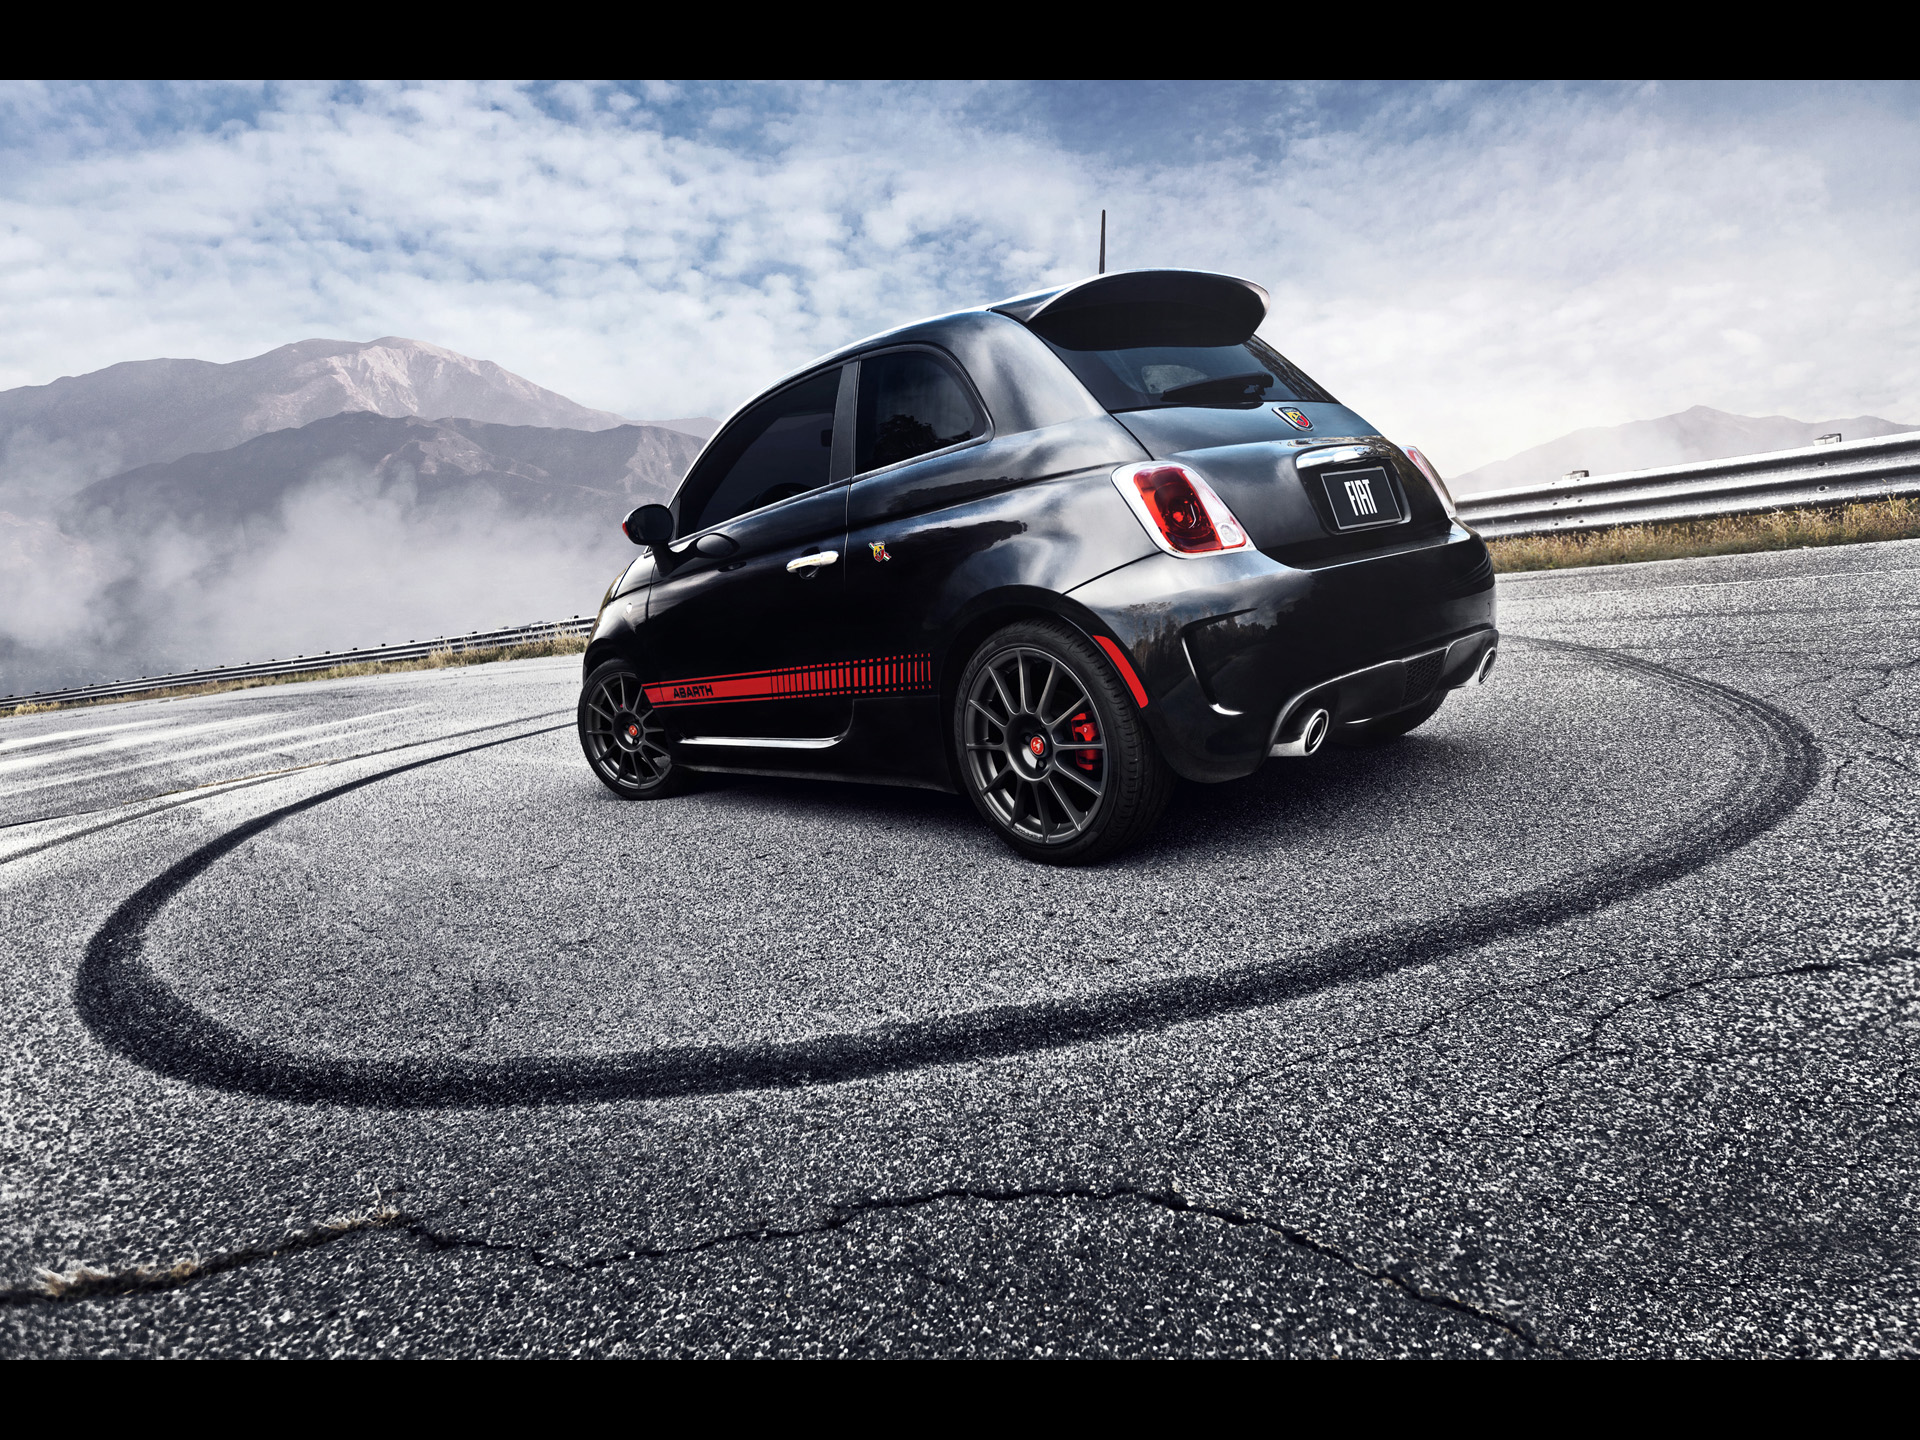 fiat 500 abarth kreis hintergrundbilder fiat 500 abarth kreis frei fotos. Black Bedroom Furniture Sets. Home Design Ideas